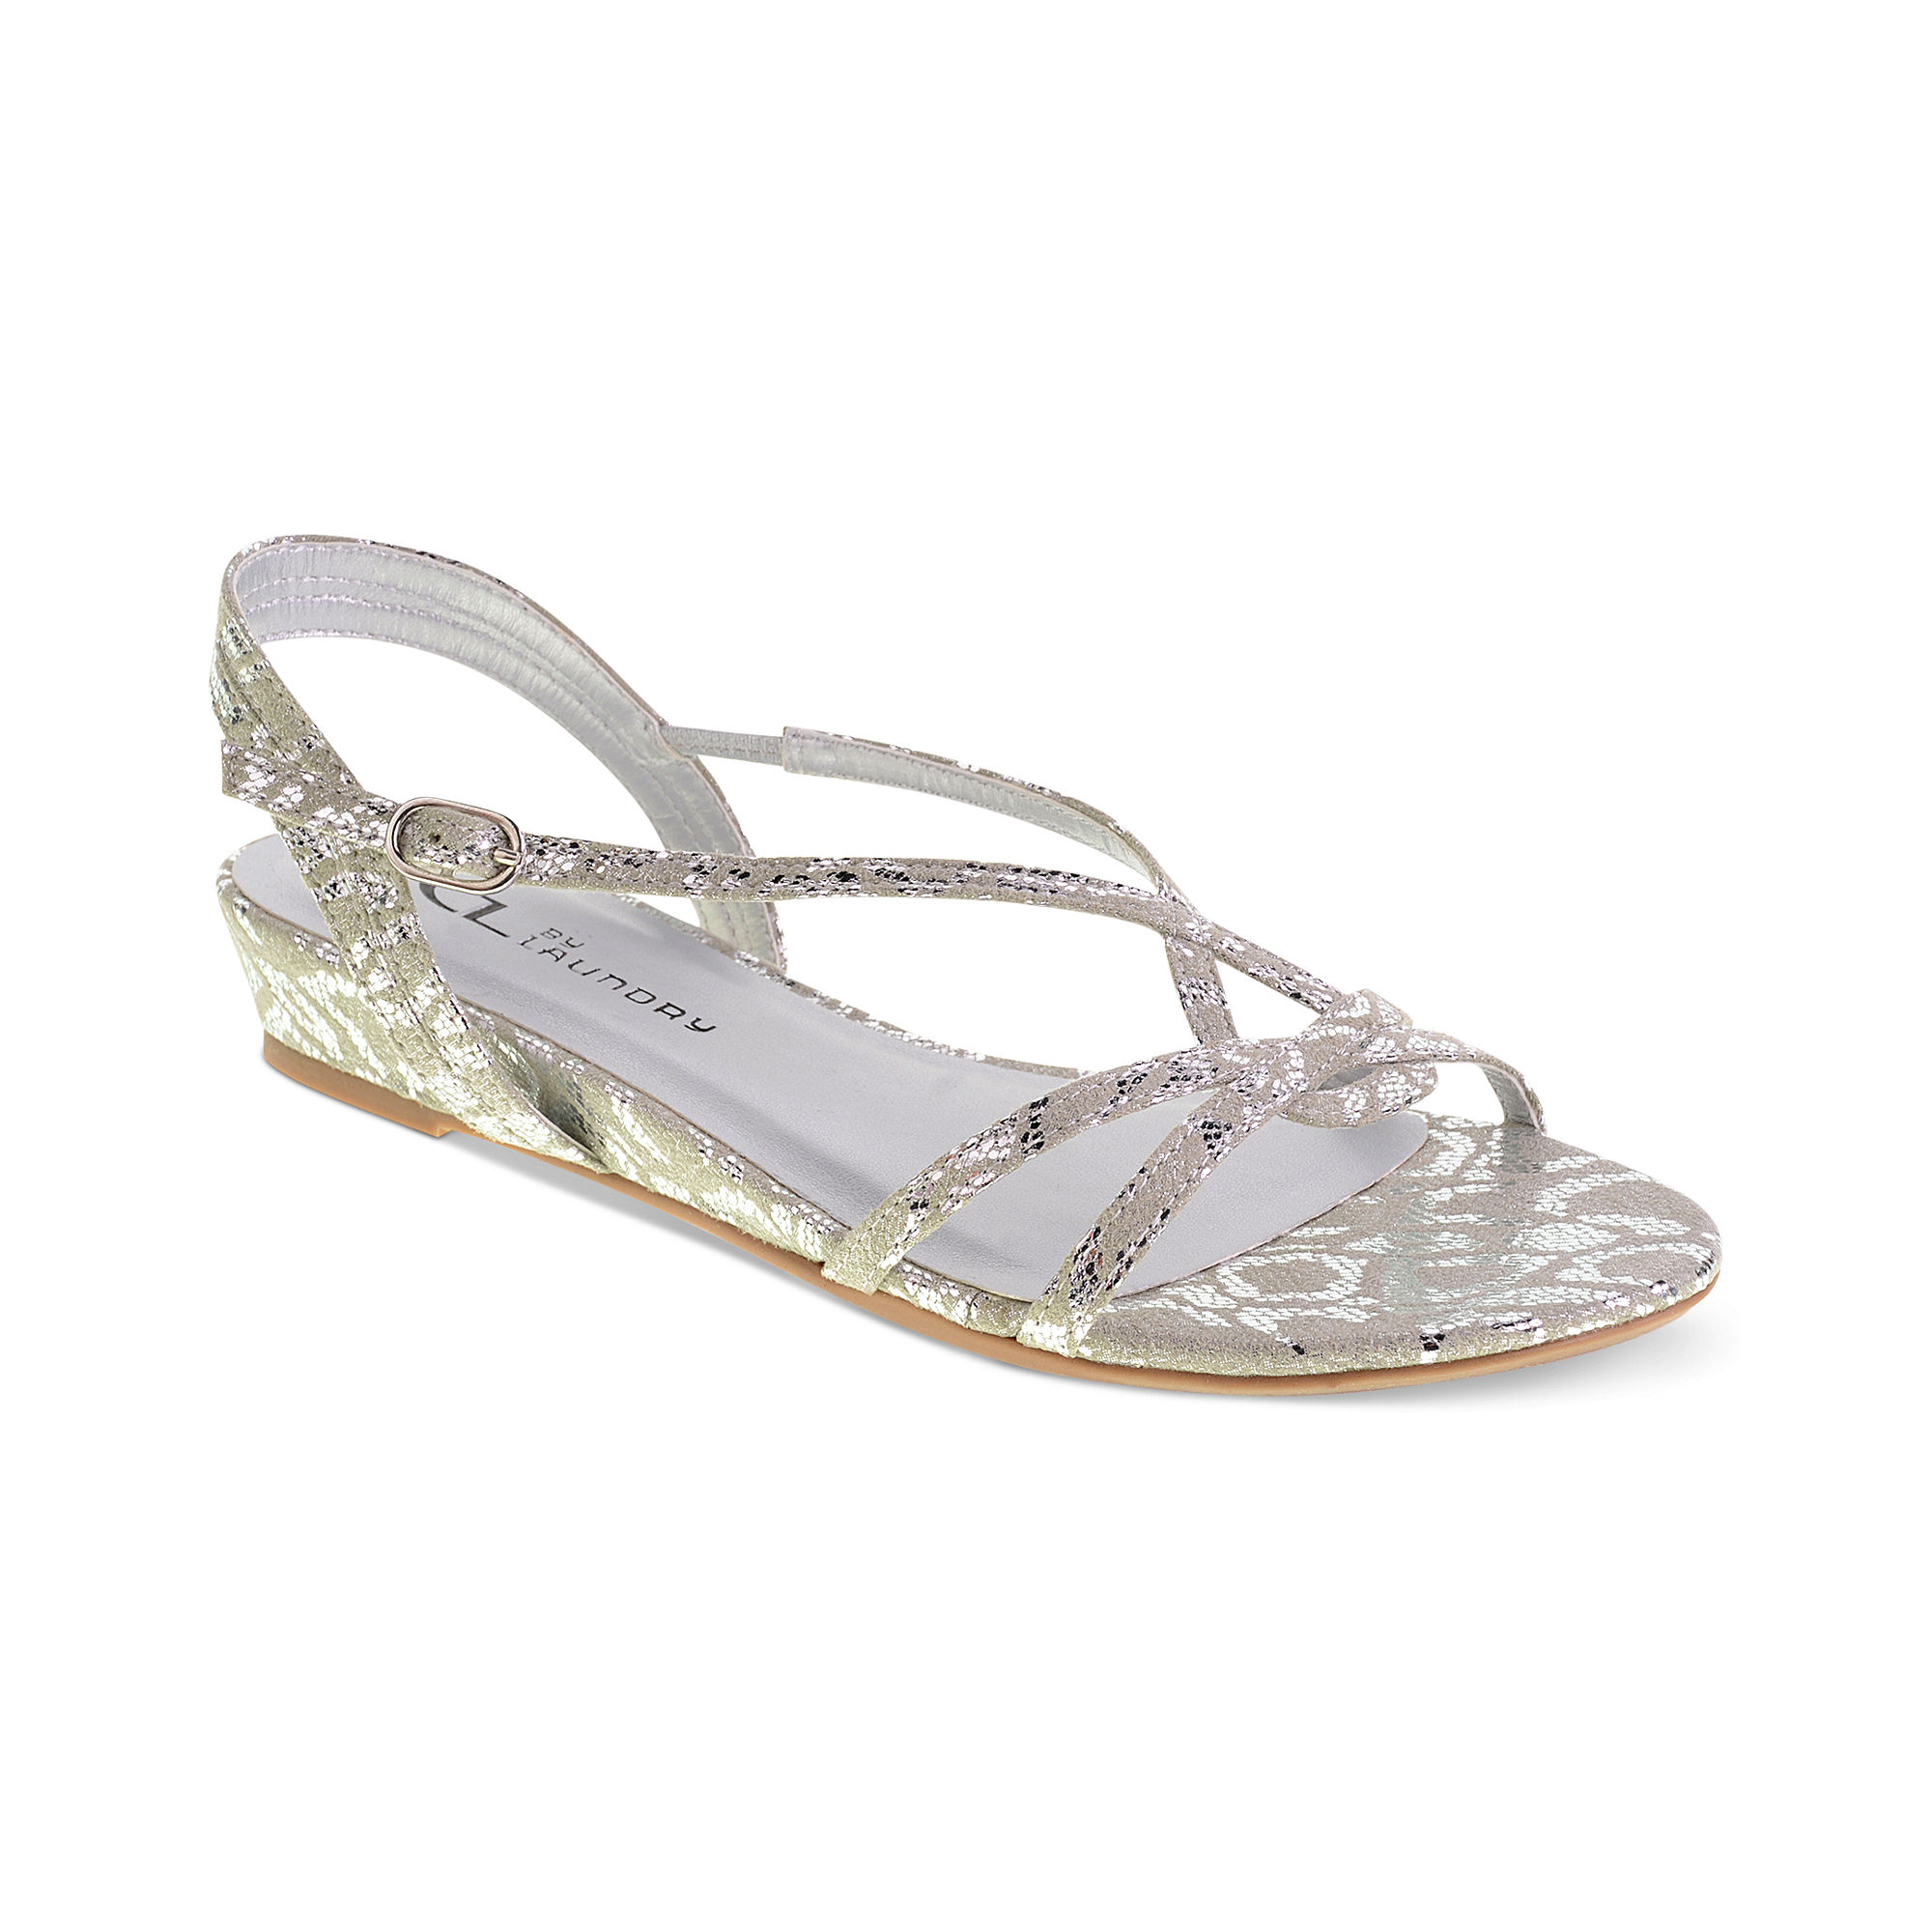 Chinese Laundry Cl By Laundry Shoes Silvie Flat Sandals in ...